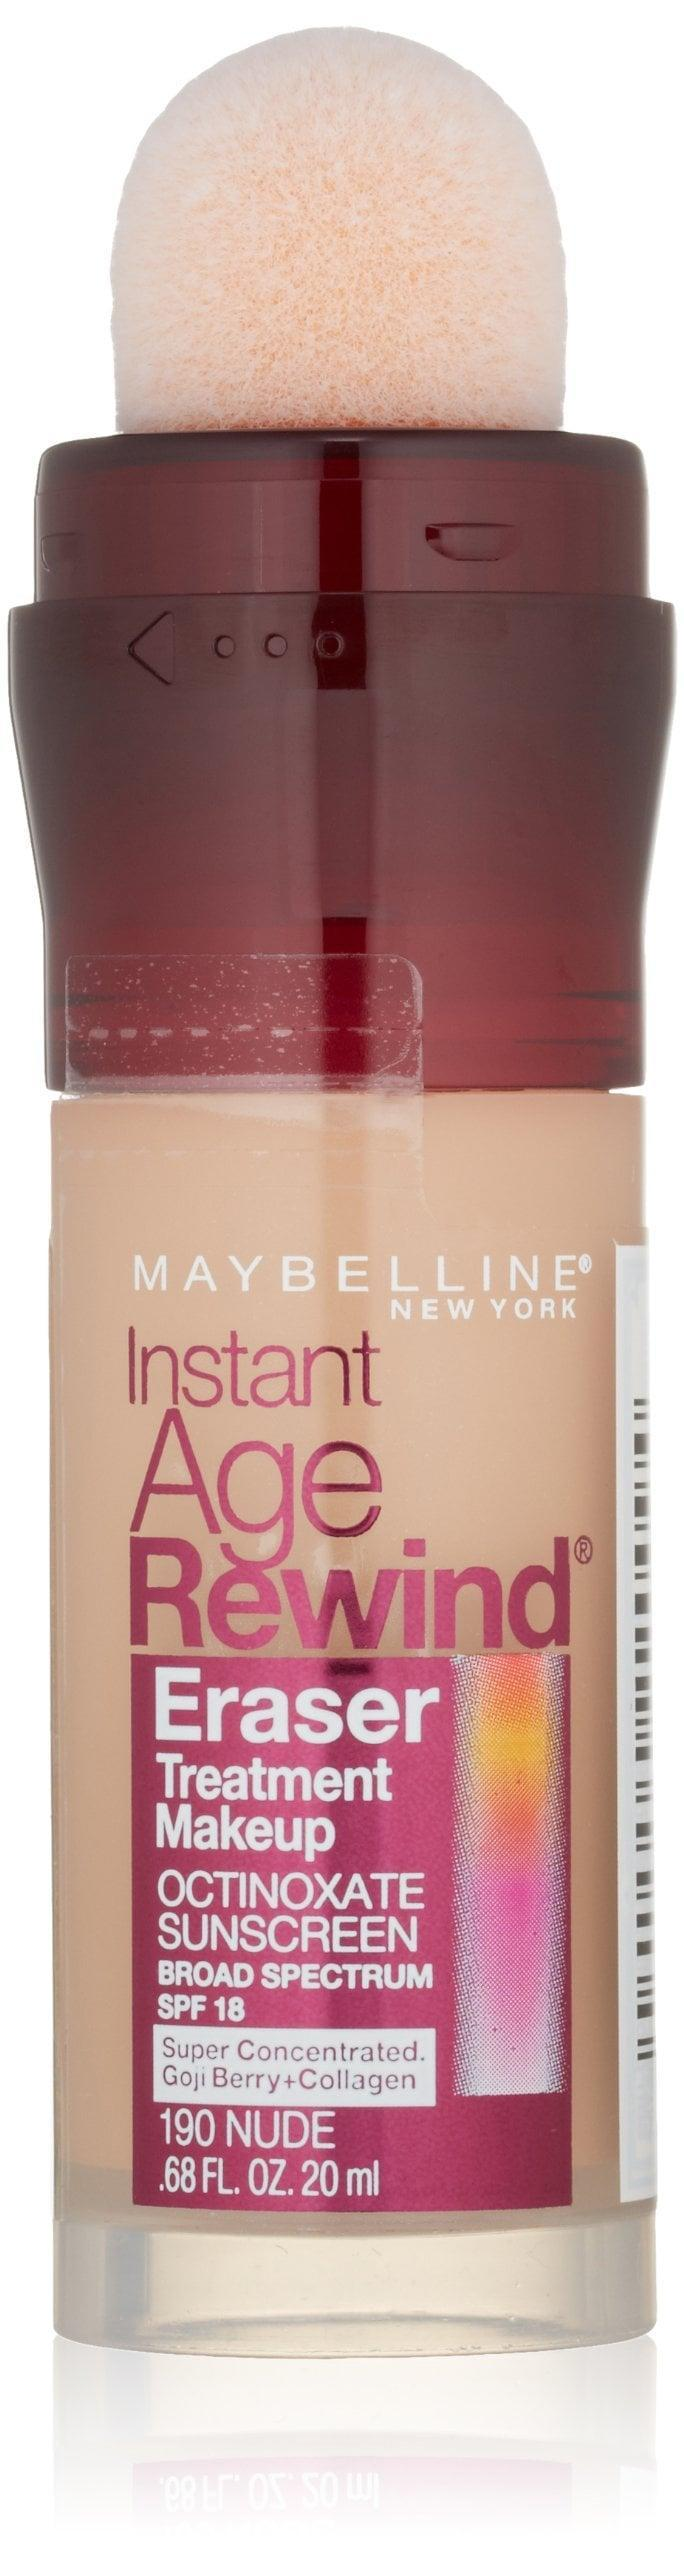 "<p>This <span>Maybelline New York Instant Age Rewind Eraser Concealer </span> ($8) is a bestseller on Amazon for brightening the under-eye area.</p> <p><strong>Customer Review:</strong> ""I have horrendous dark circles. At any given time I am wearing at least four different concealers in an effort to hide them. On a really bad day, five. I'll admit, I was skeptical about this product, but, in desperation, I thought I'd give it a try and wow, am I glad I did. It has amazing coverage and is highly blendable into my other makeup, which is a real plus. It didn't fade over time like some of my other, more expensive, brands have.""</p>"